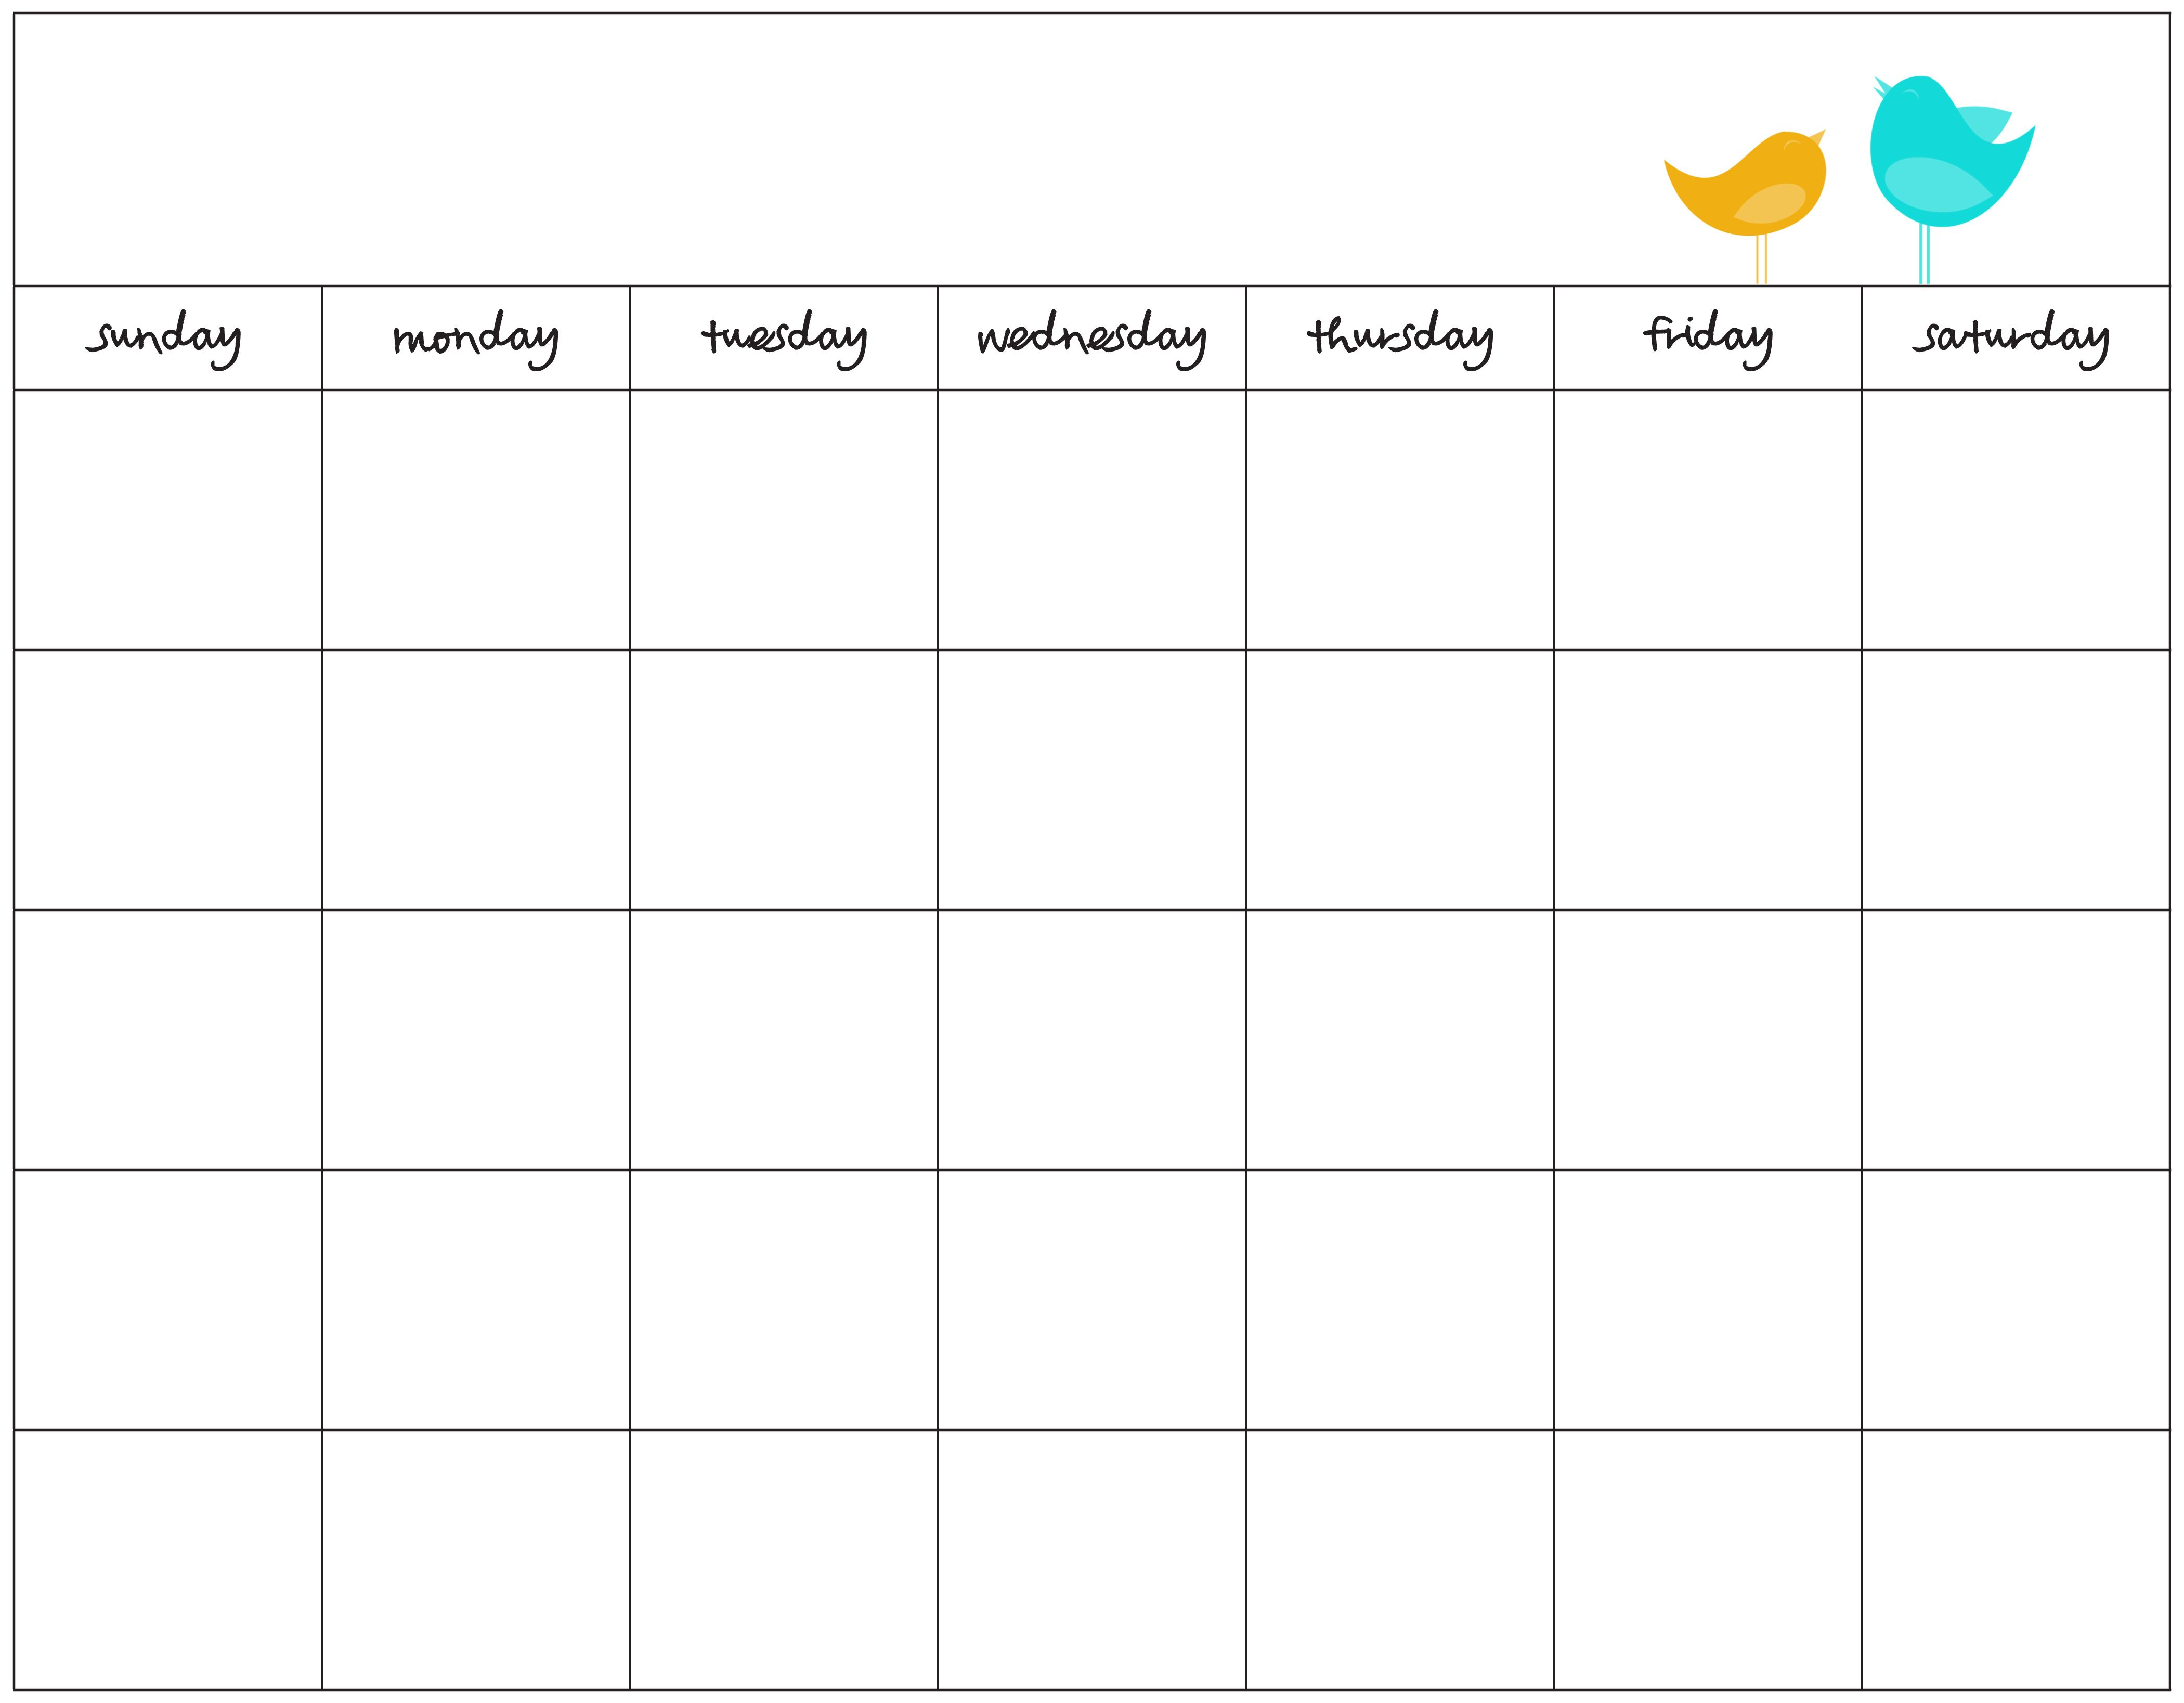 photo regarding Calendar Free Printable referred to as calendar.Exceptional for packing for a family vacation, checklist elements